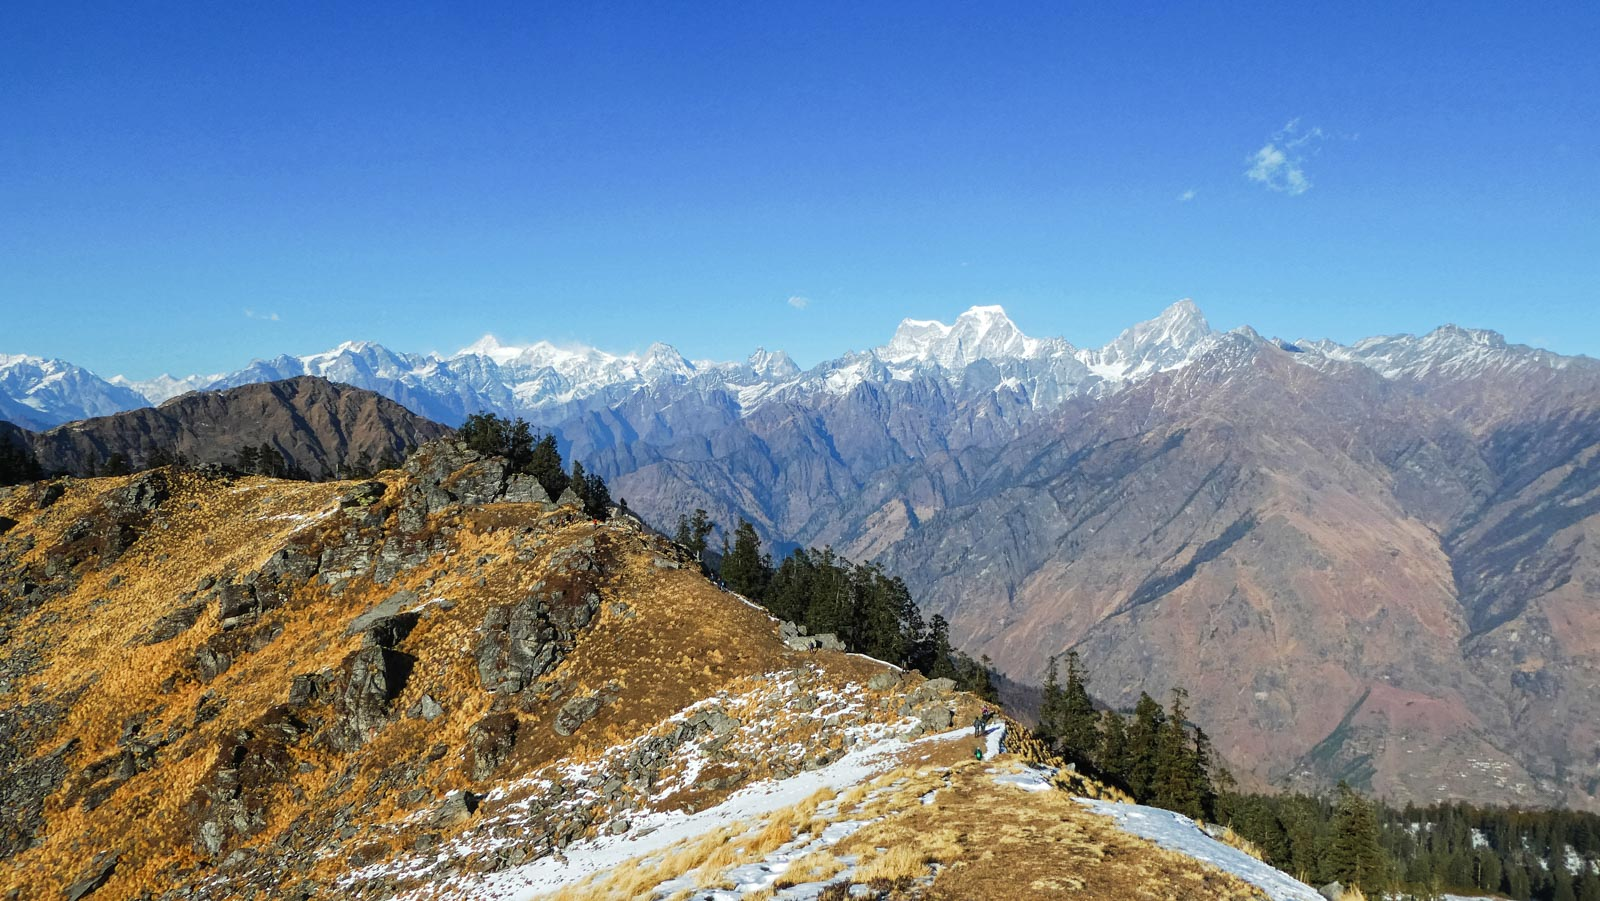 The best Himalayan travel adventure on earth: 3 day Kuari Pass Trek. People walk along the summit of the Himalayan mountains